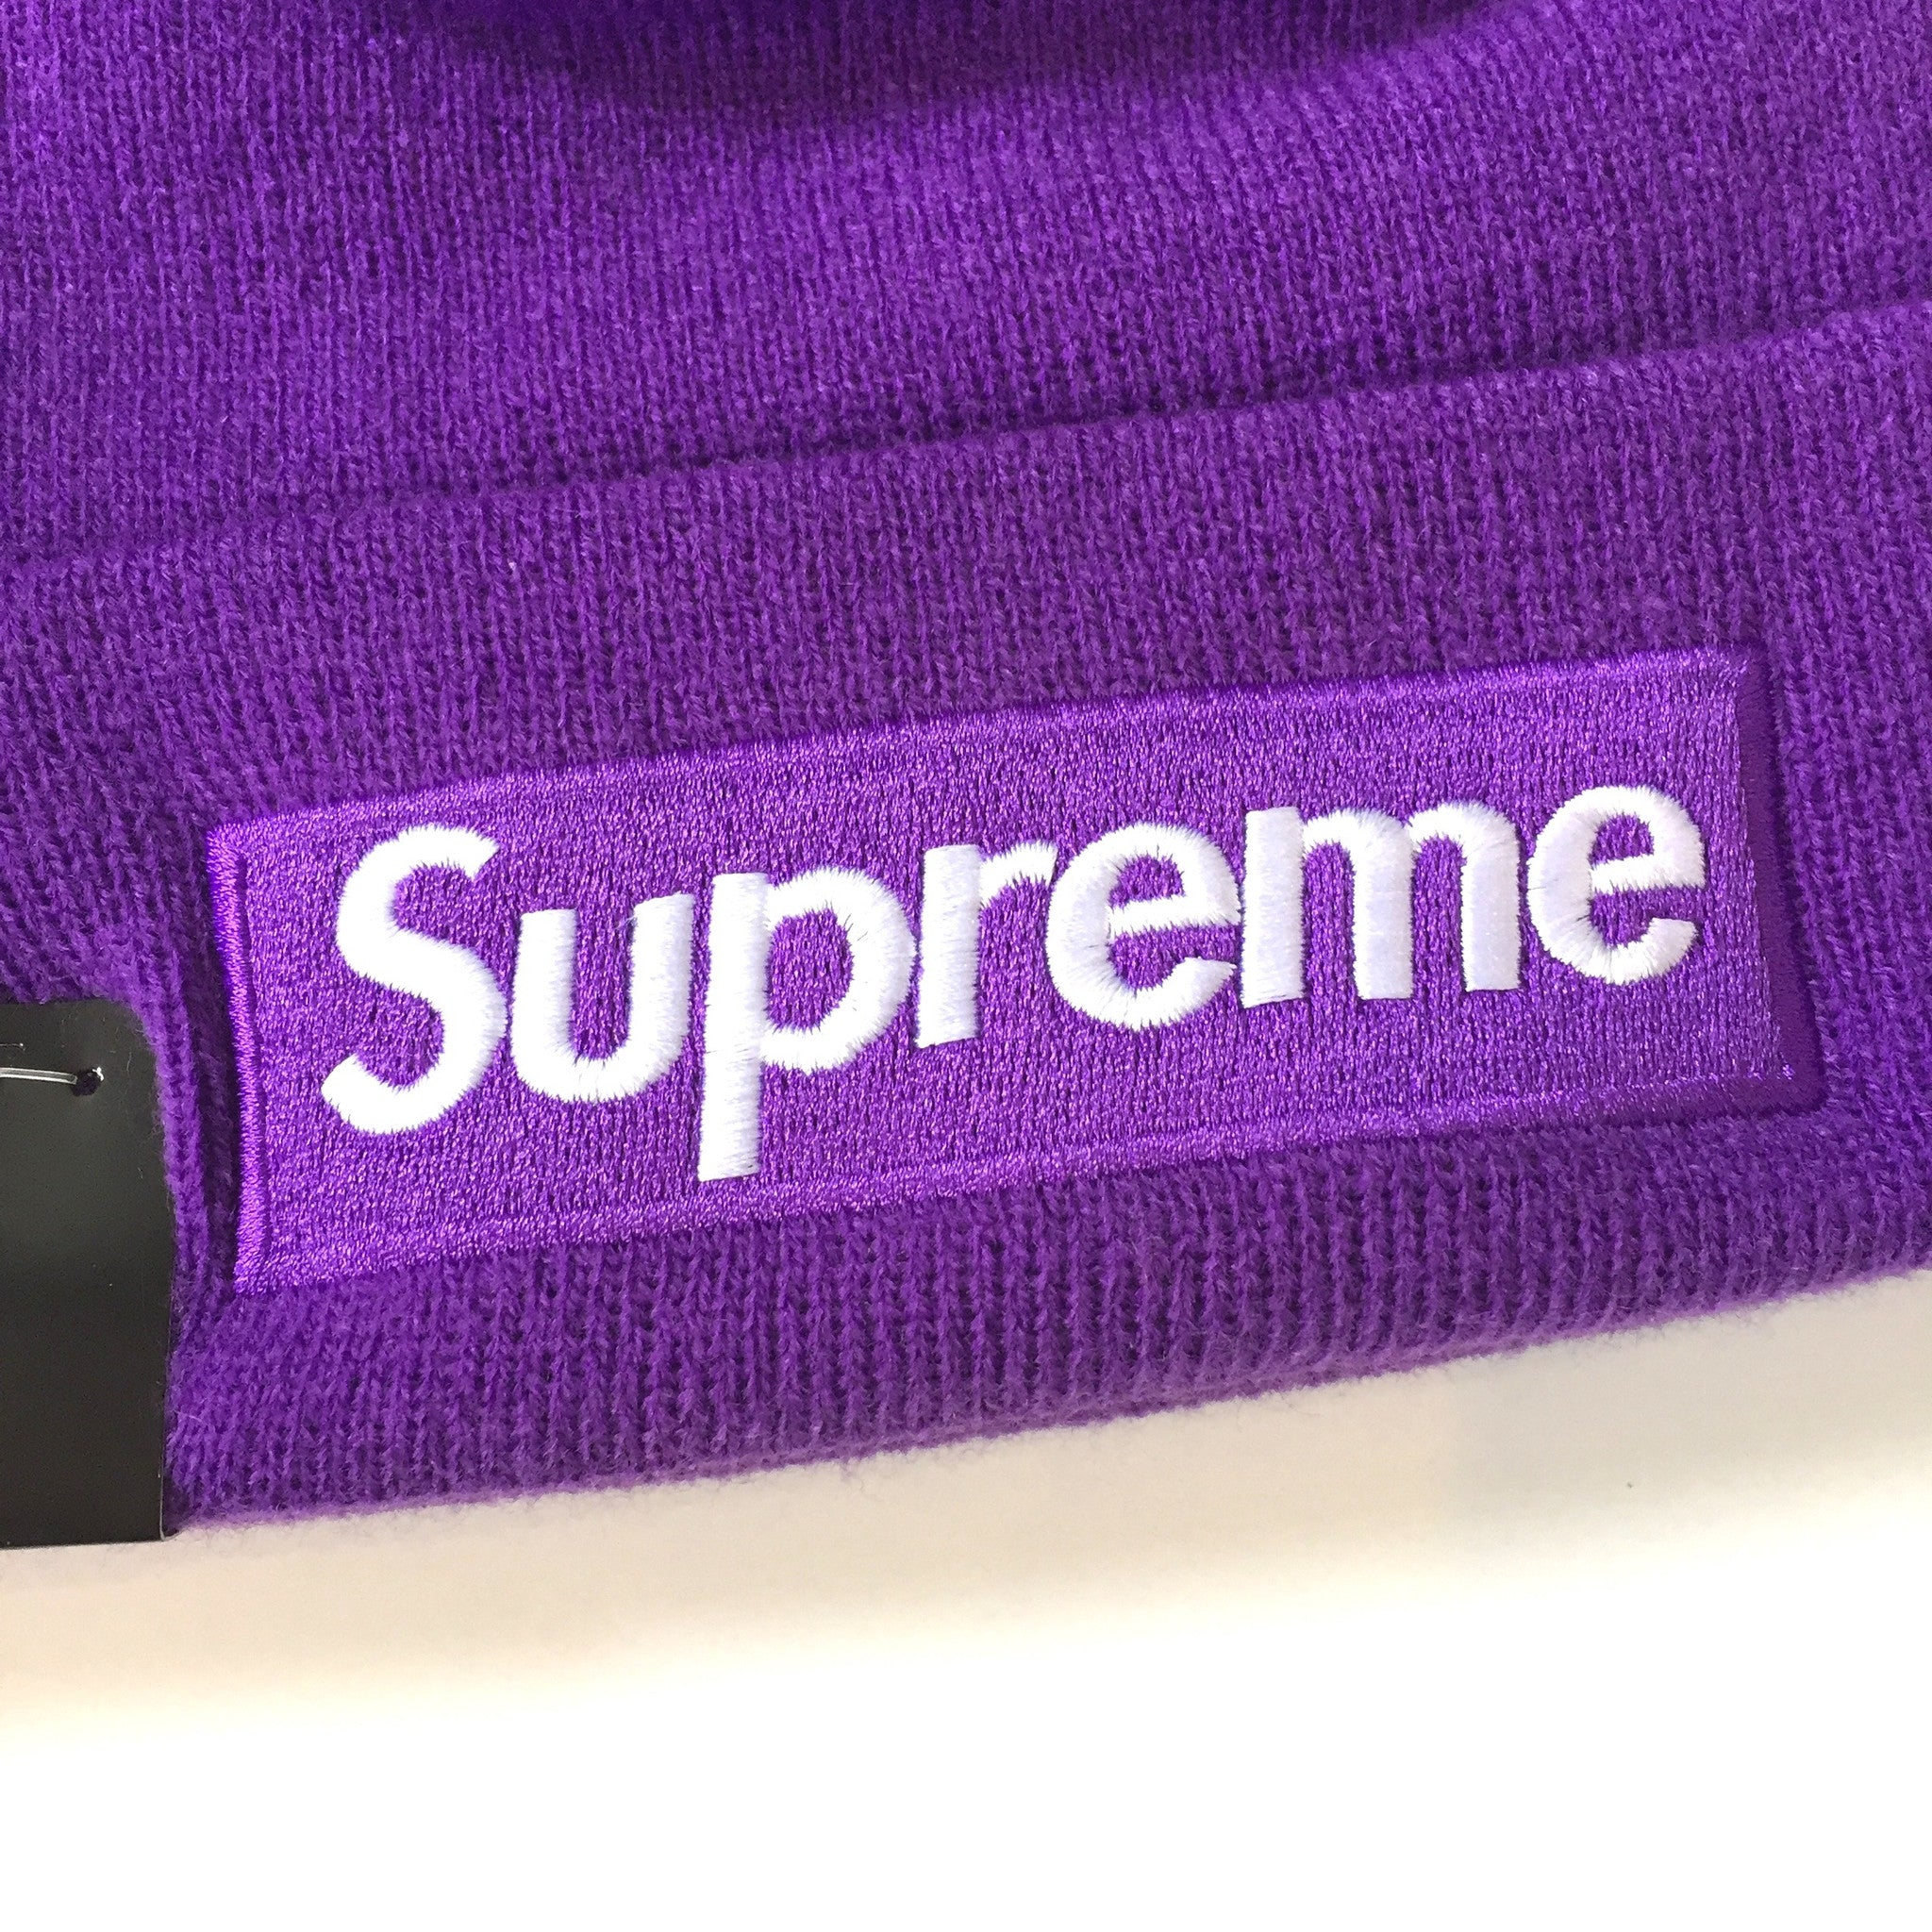 a1f00a0c5cd Supreme x New Era - Purple Box Logo Embroidered Beanie Knit Hat ...